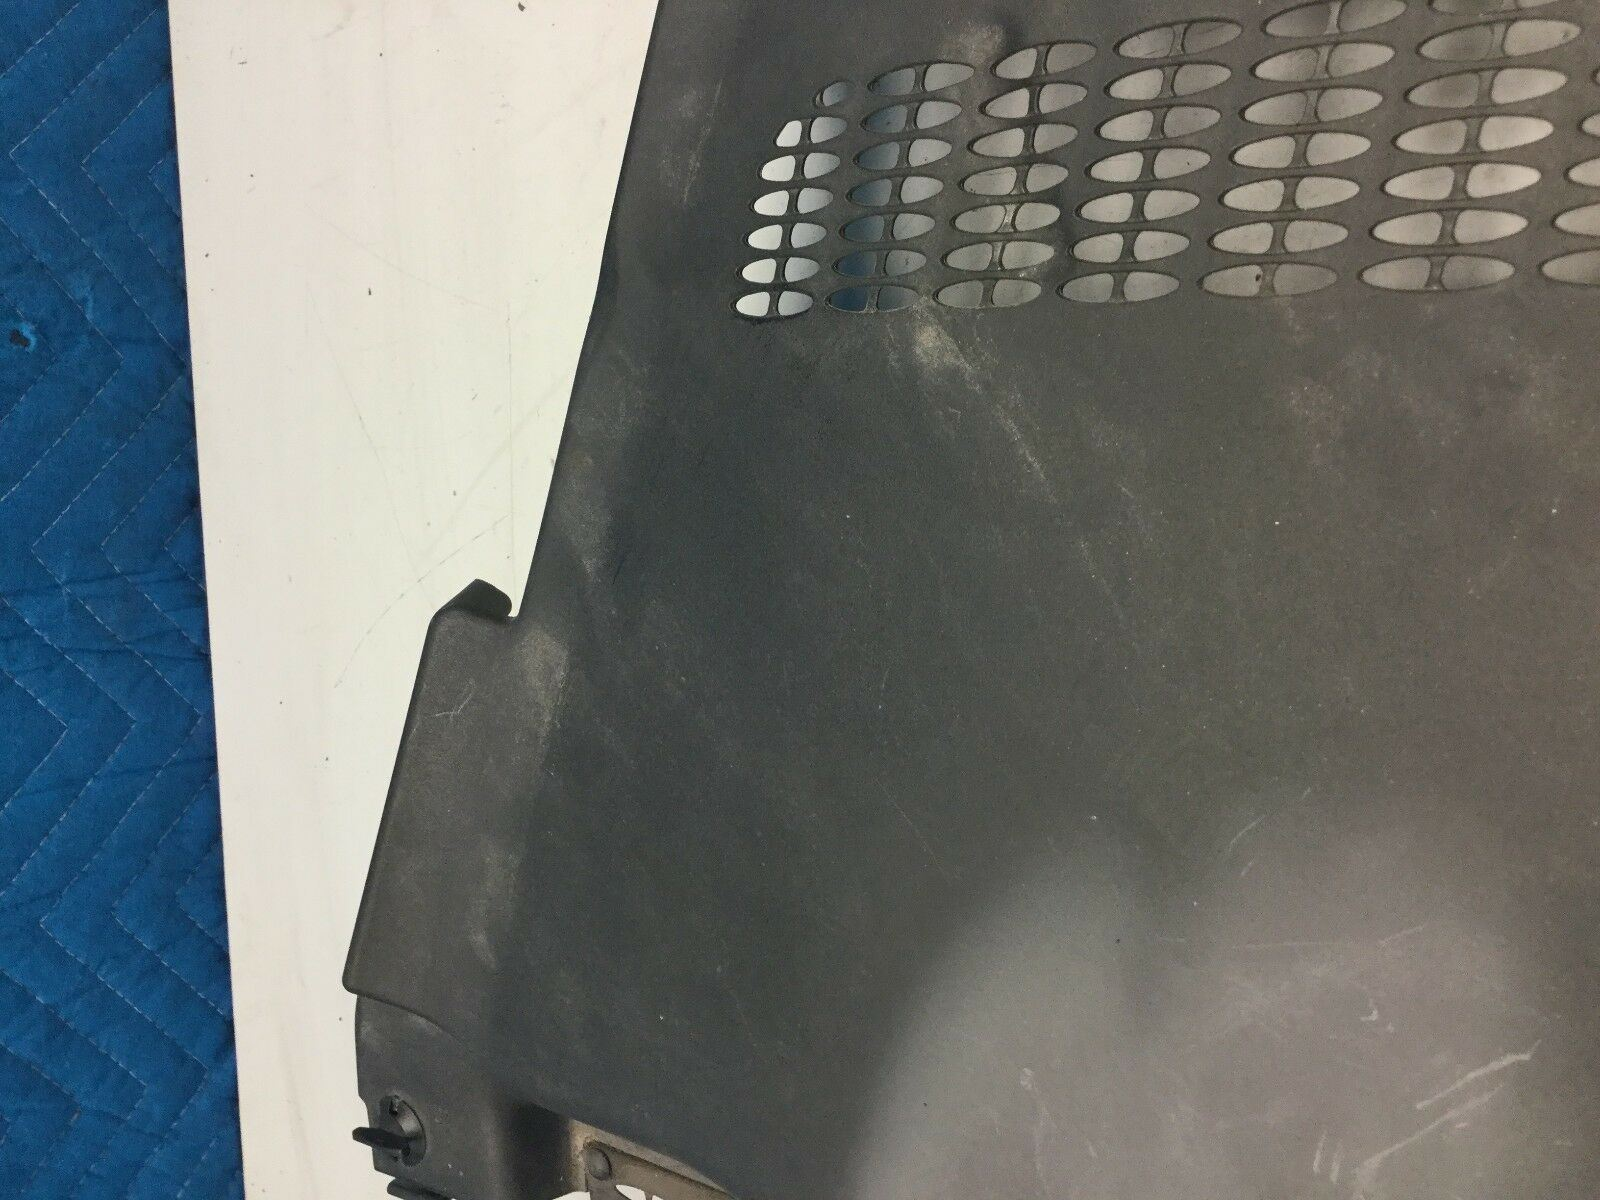 Genuine Mercedes W461 front panel covering A4616896308 LHD left side